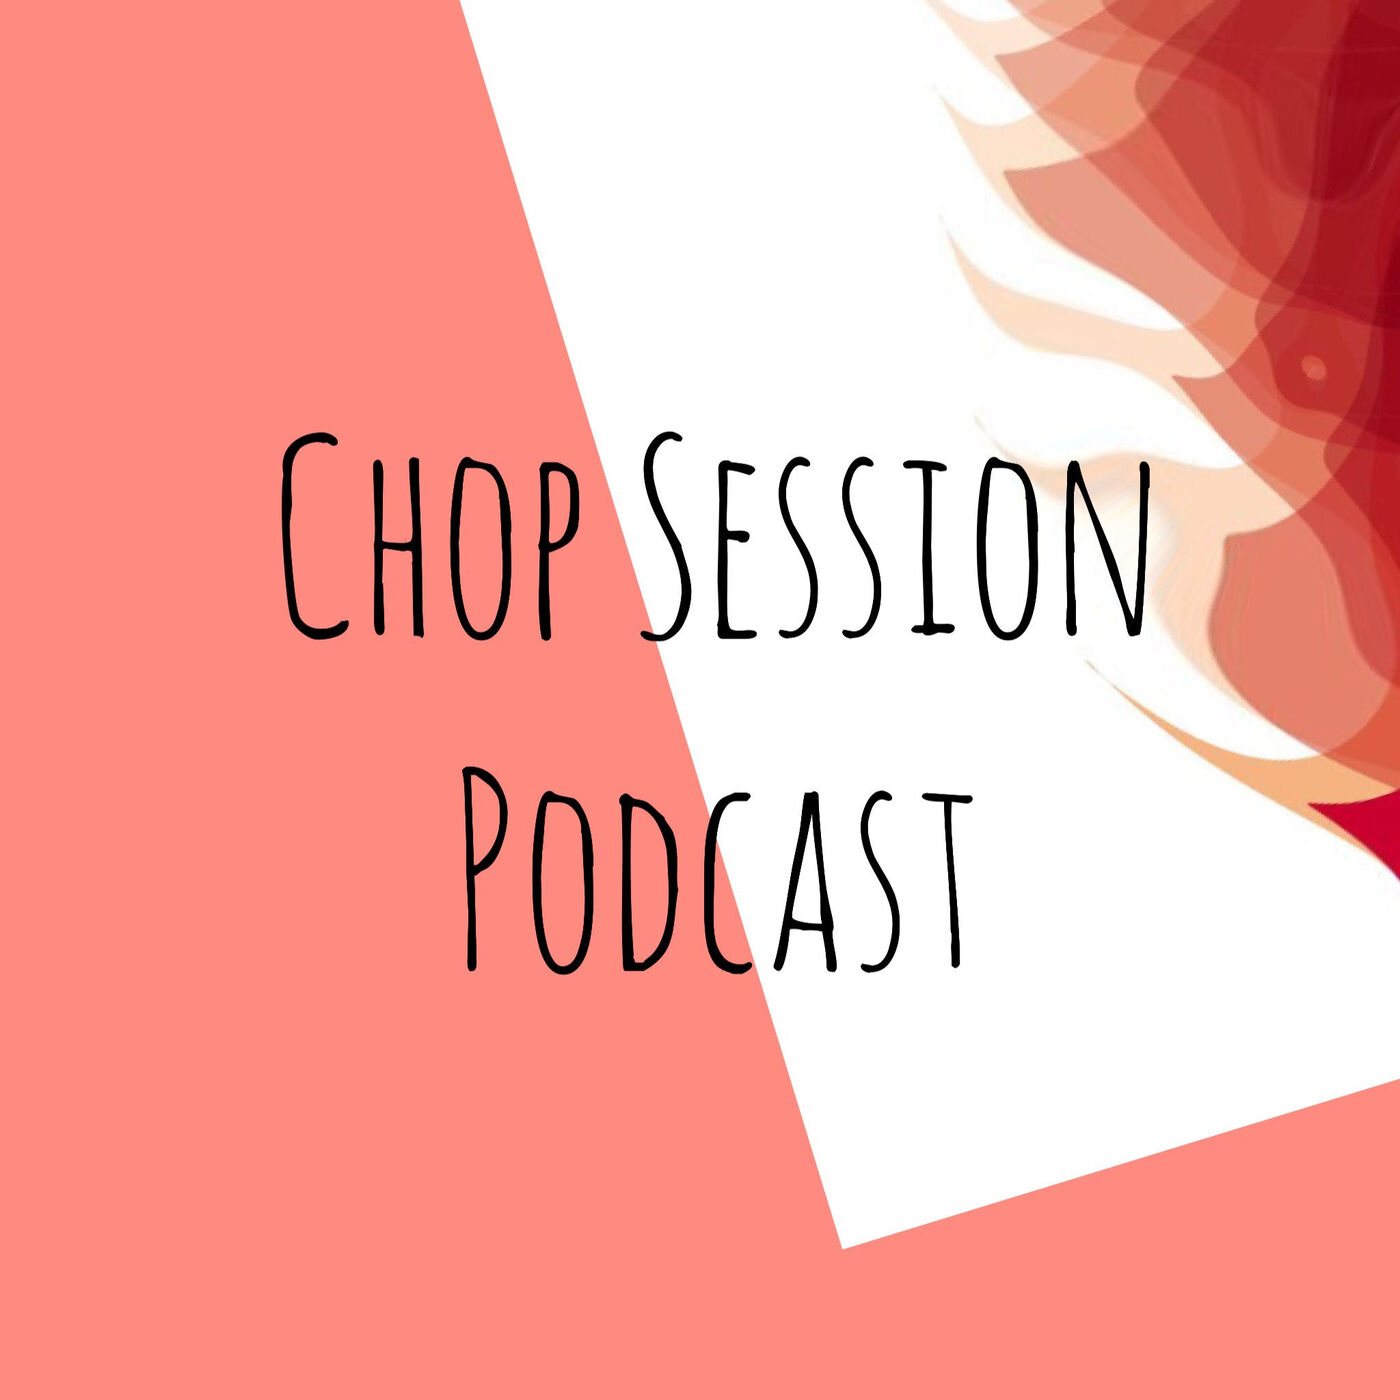 CHOP Session Podcast